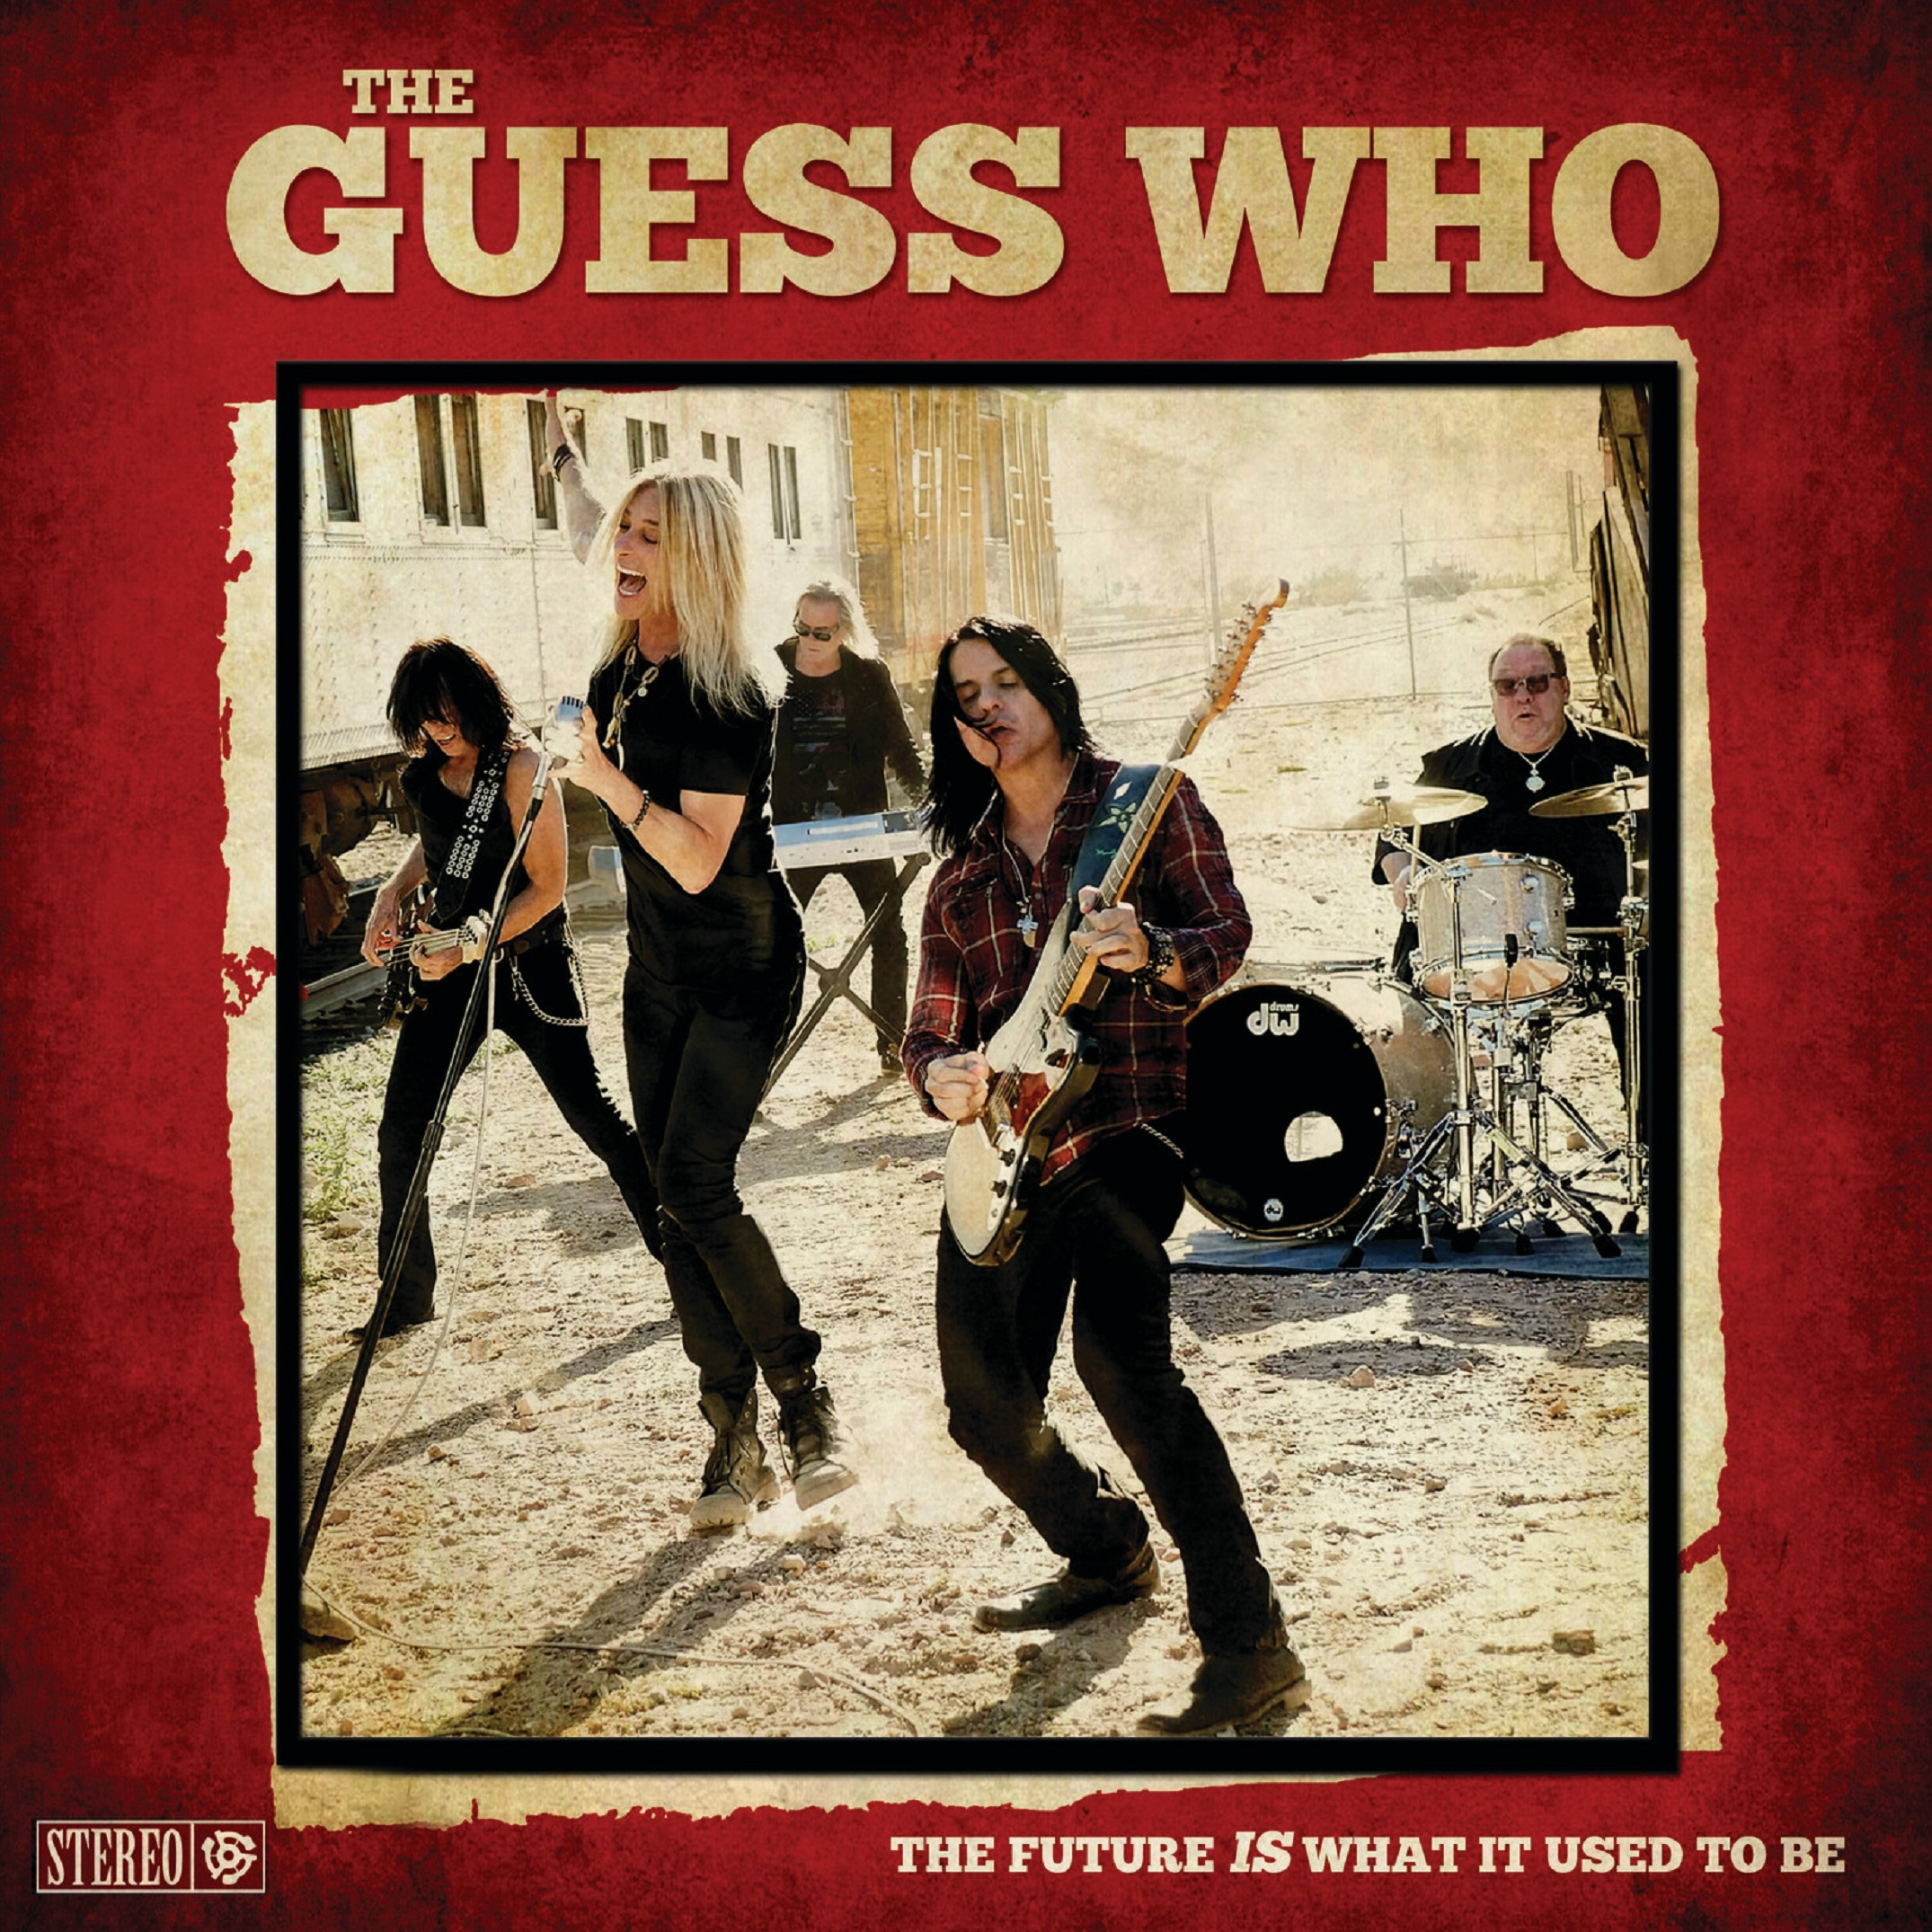 THE GUESS WHO RETURN WITH 'THE FUTURE IS WHAT IT USED TO BE'